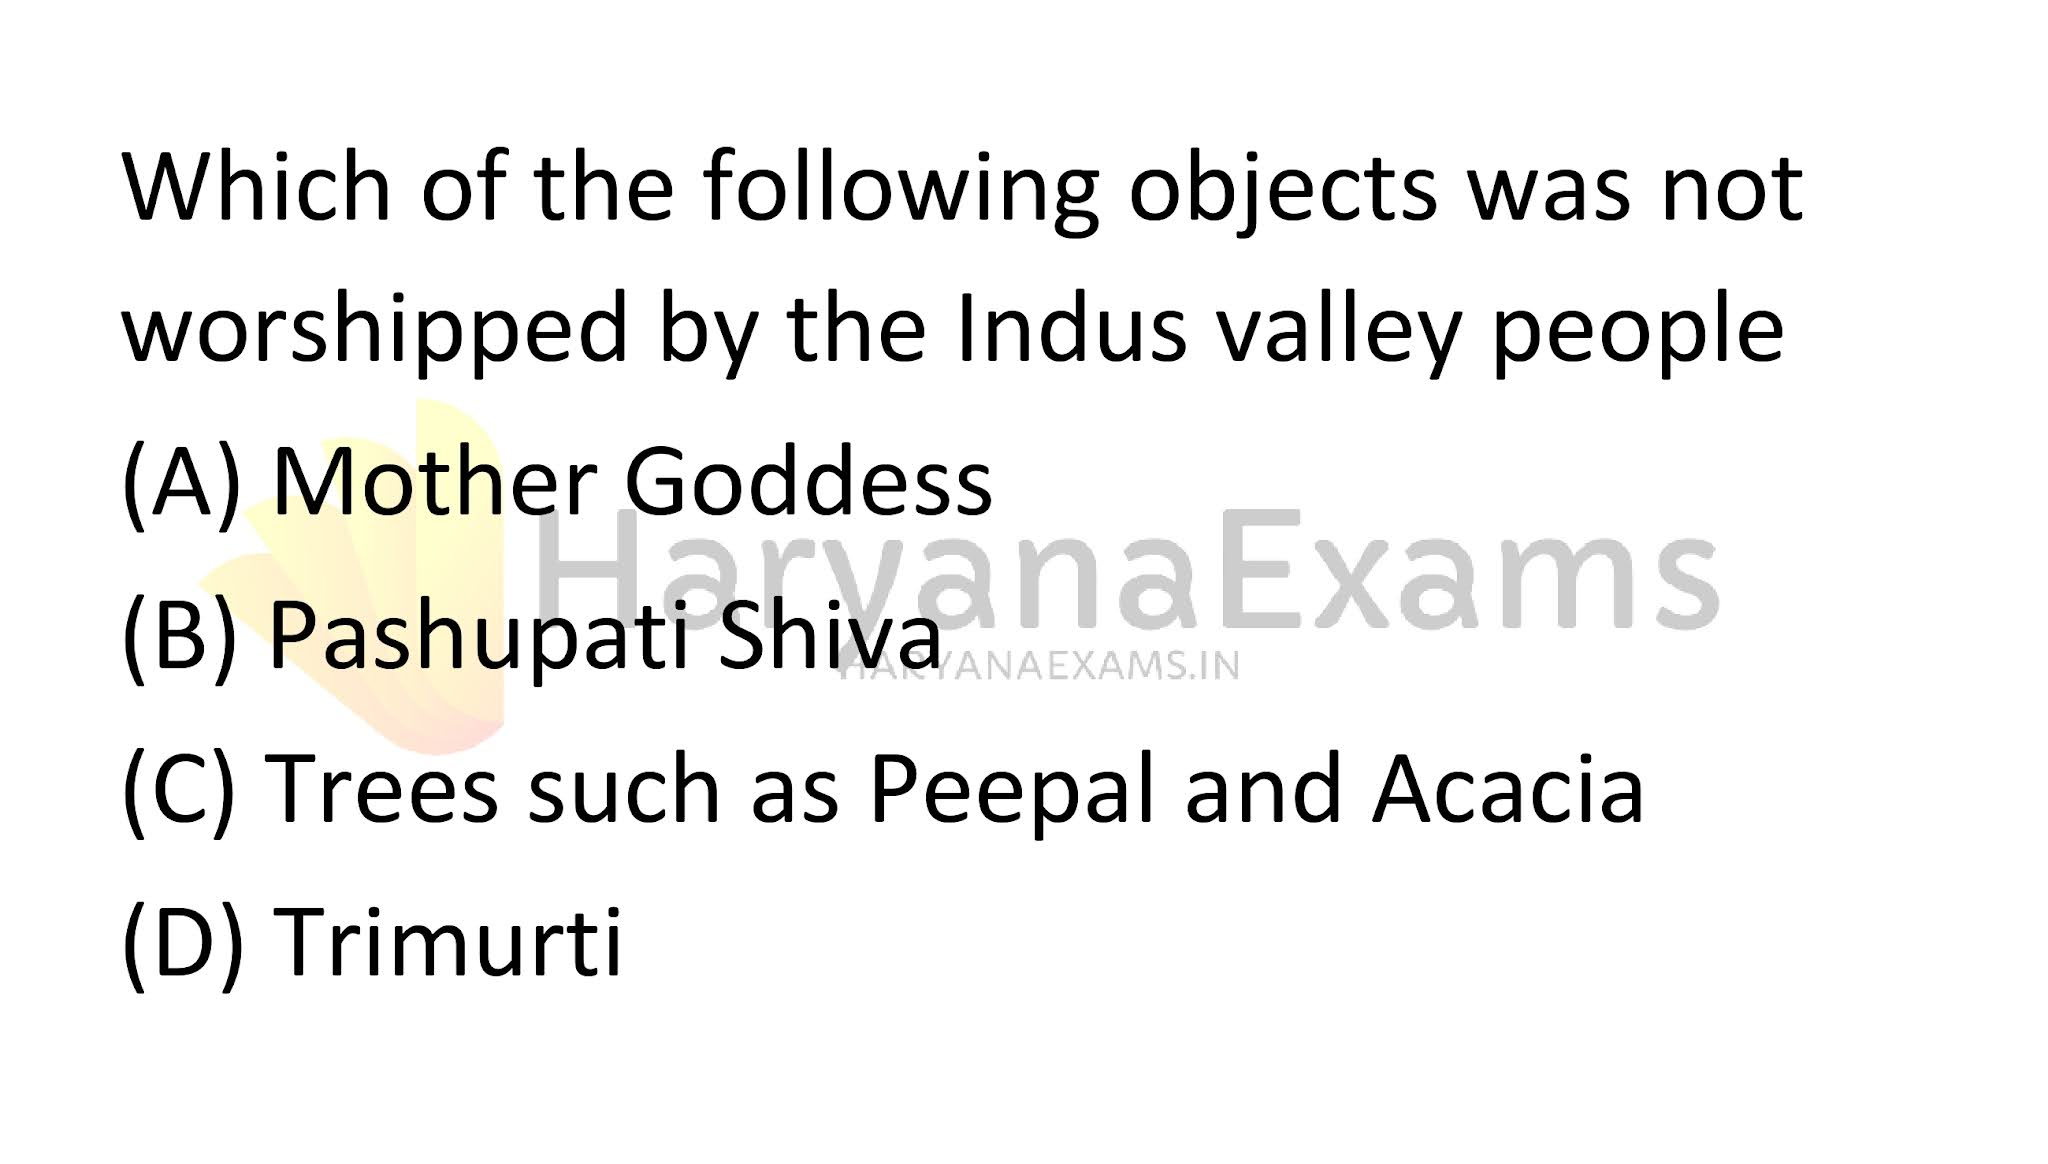 Which of the following objects was not worshipped by the Indus valley people